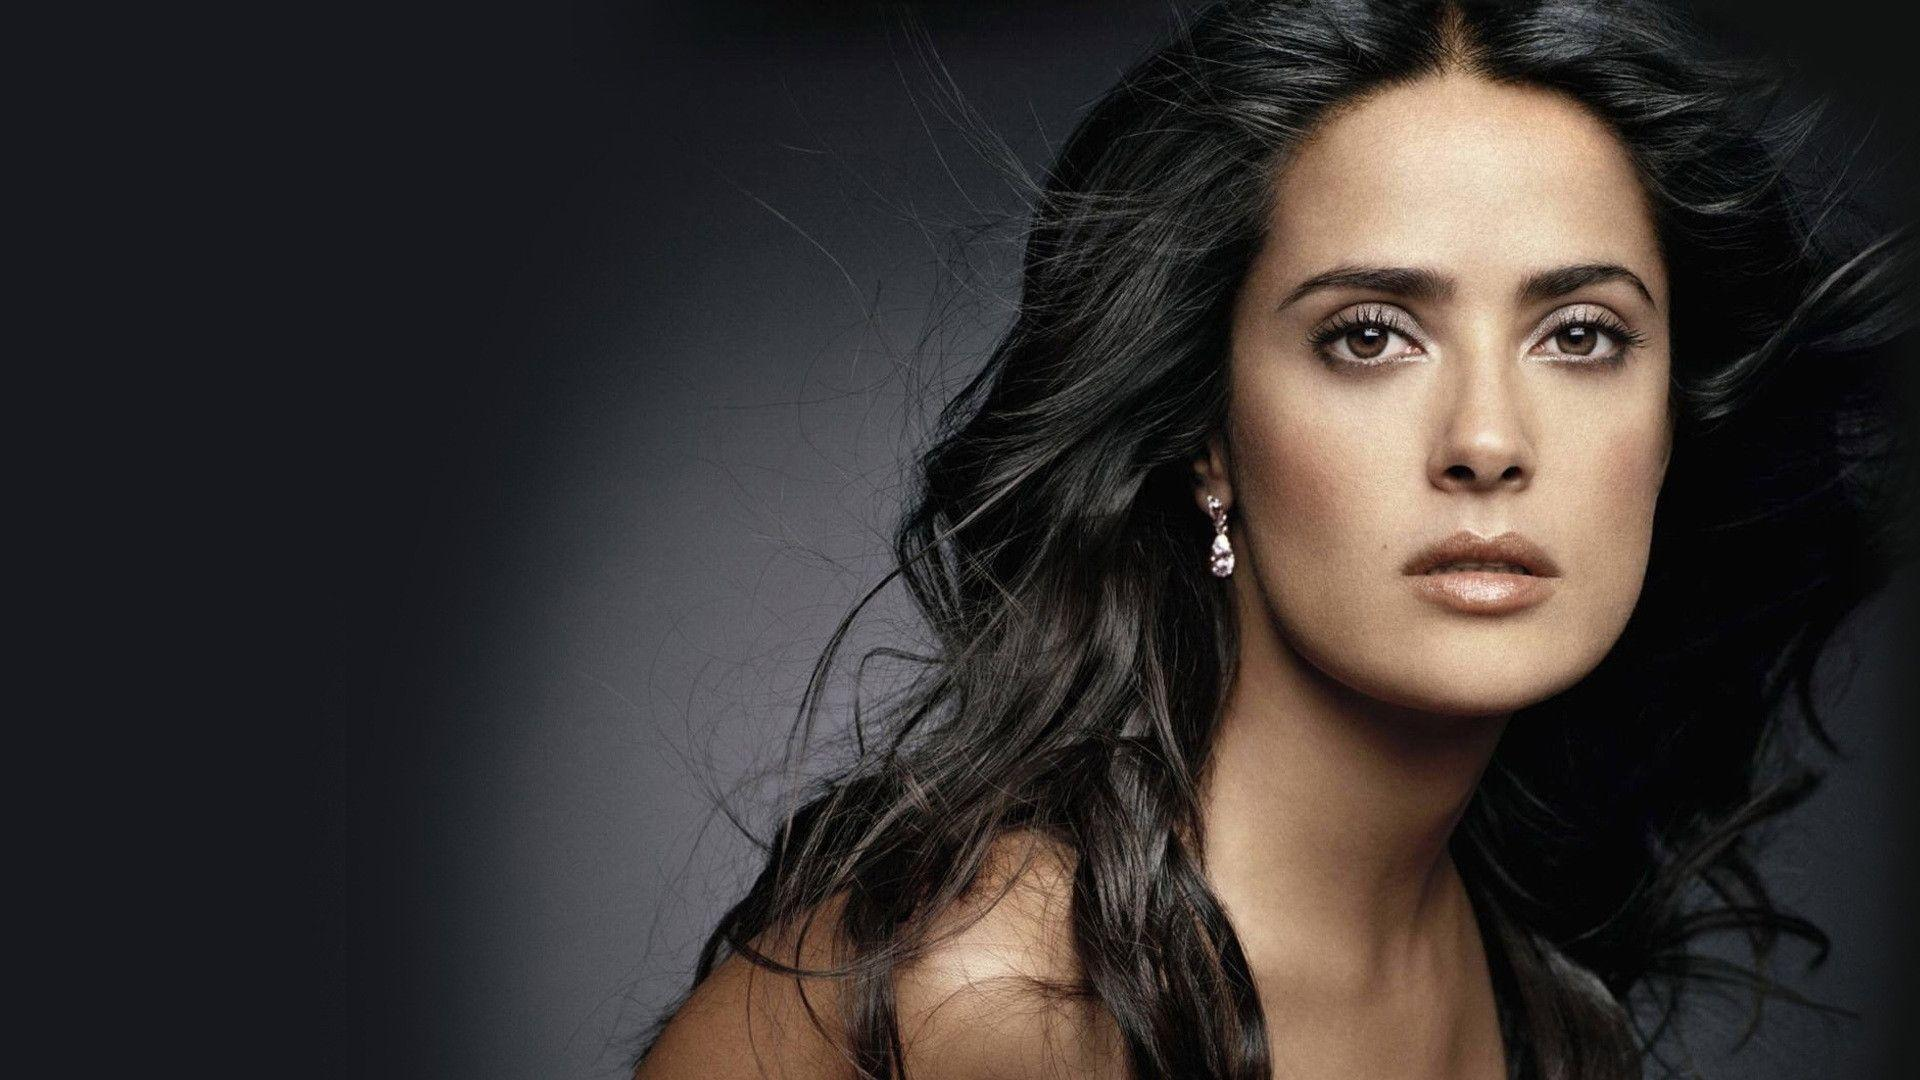 Salma Hayek Free Pictures On Greepx